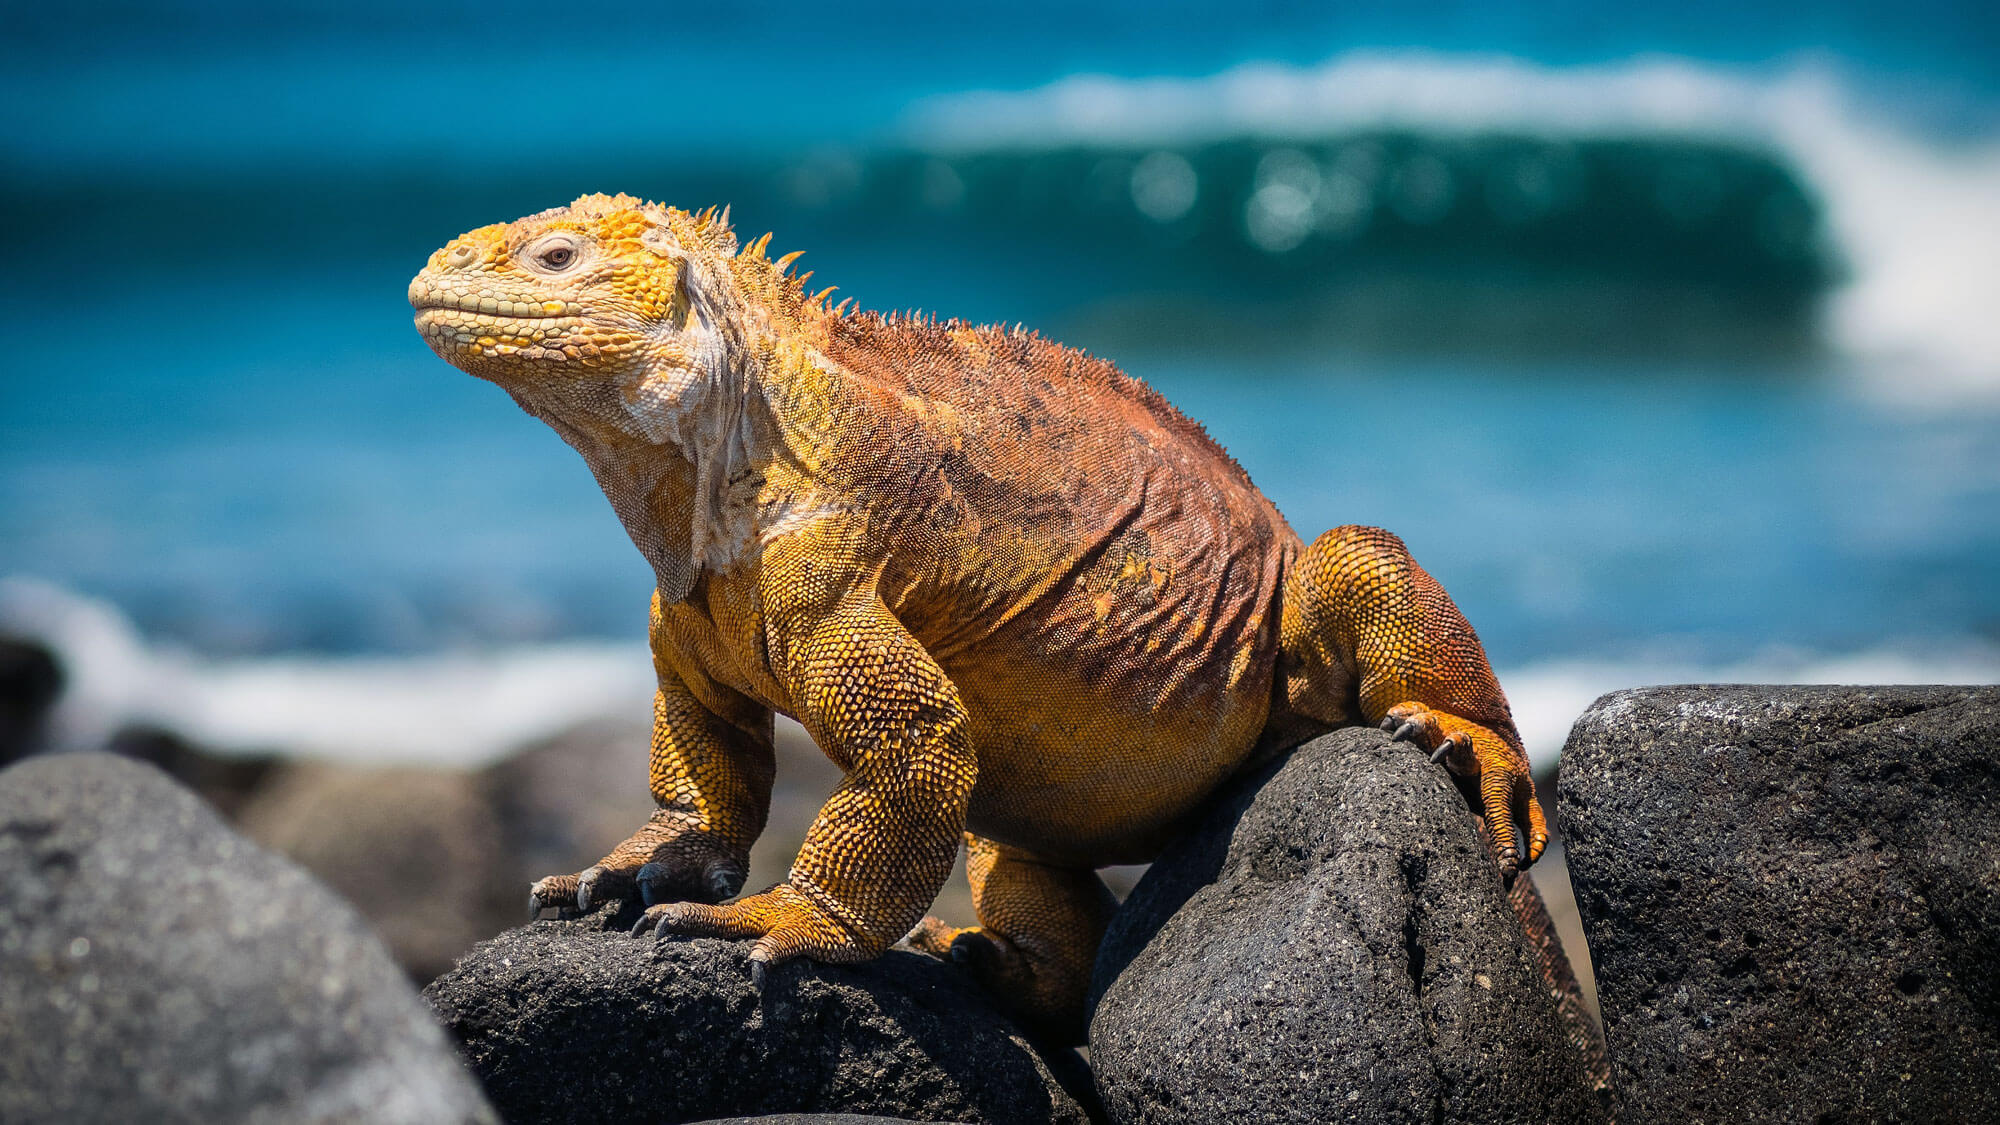 Galápagos islands is home to many interesting creatures